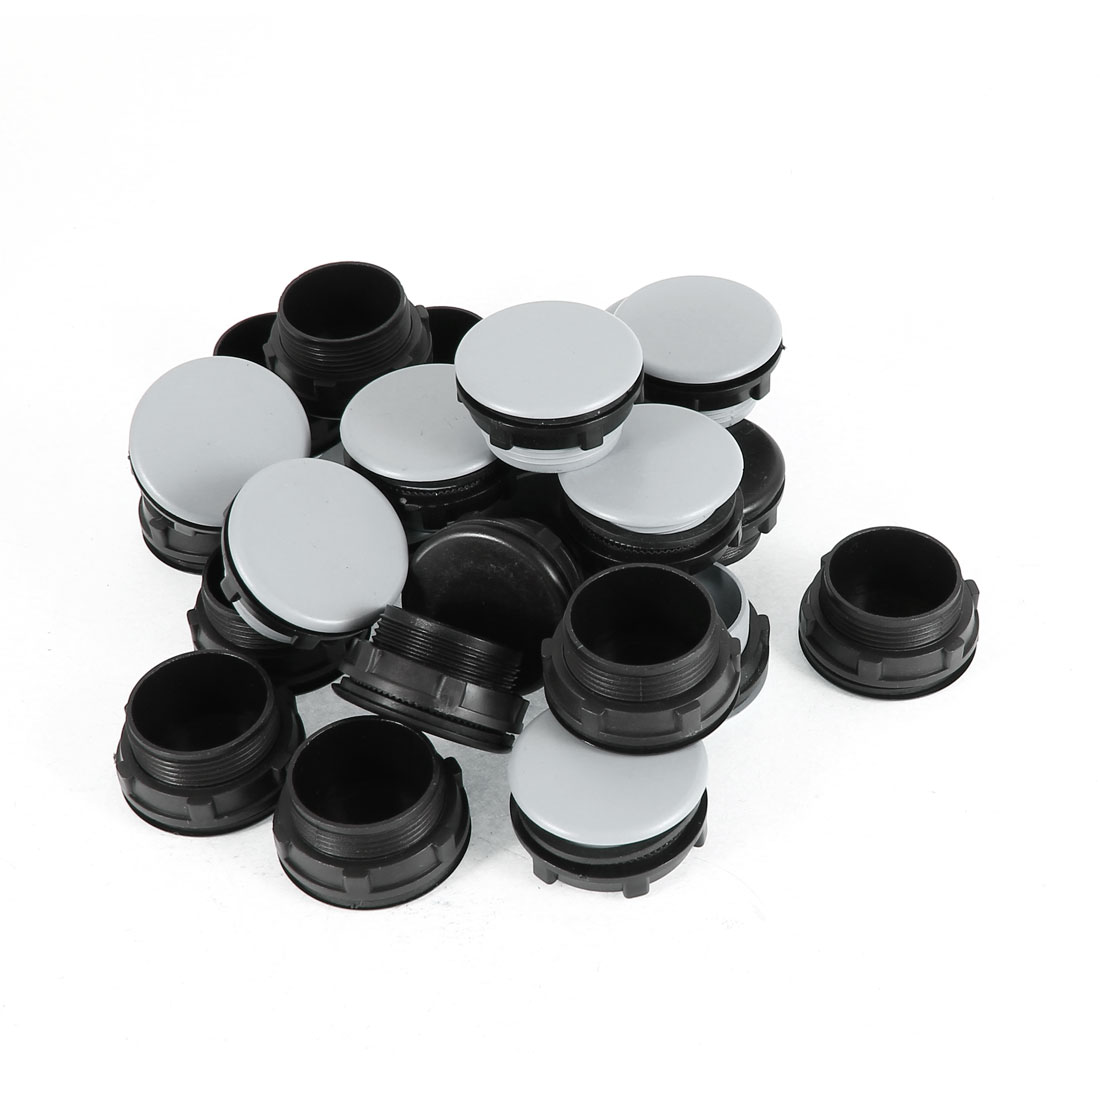 24 Pcs Black + Gray Plastic Push Button Switch 30mm Mount Hole Panel Plug Cover Cap